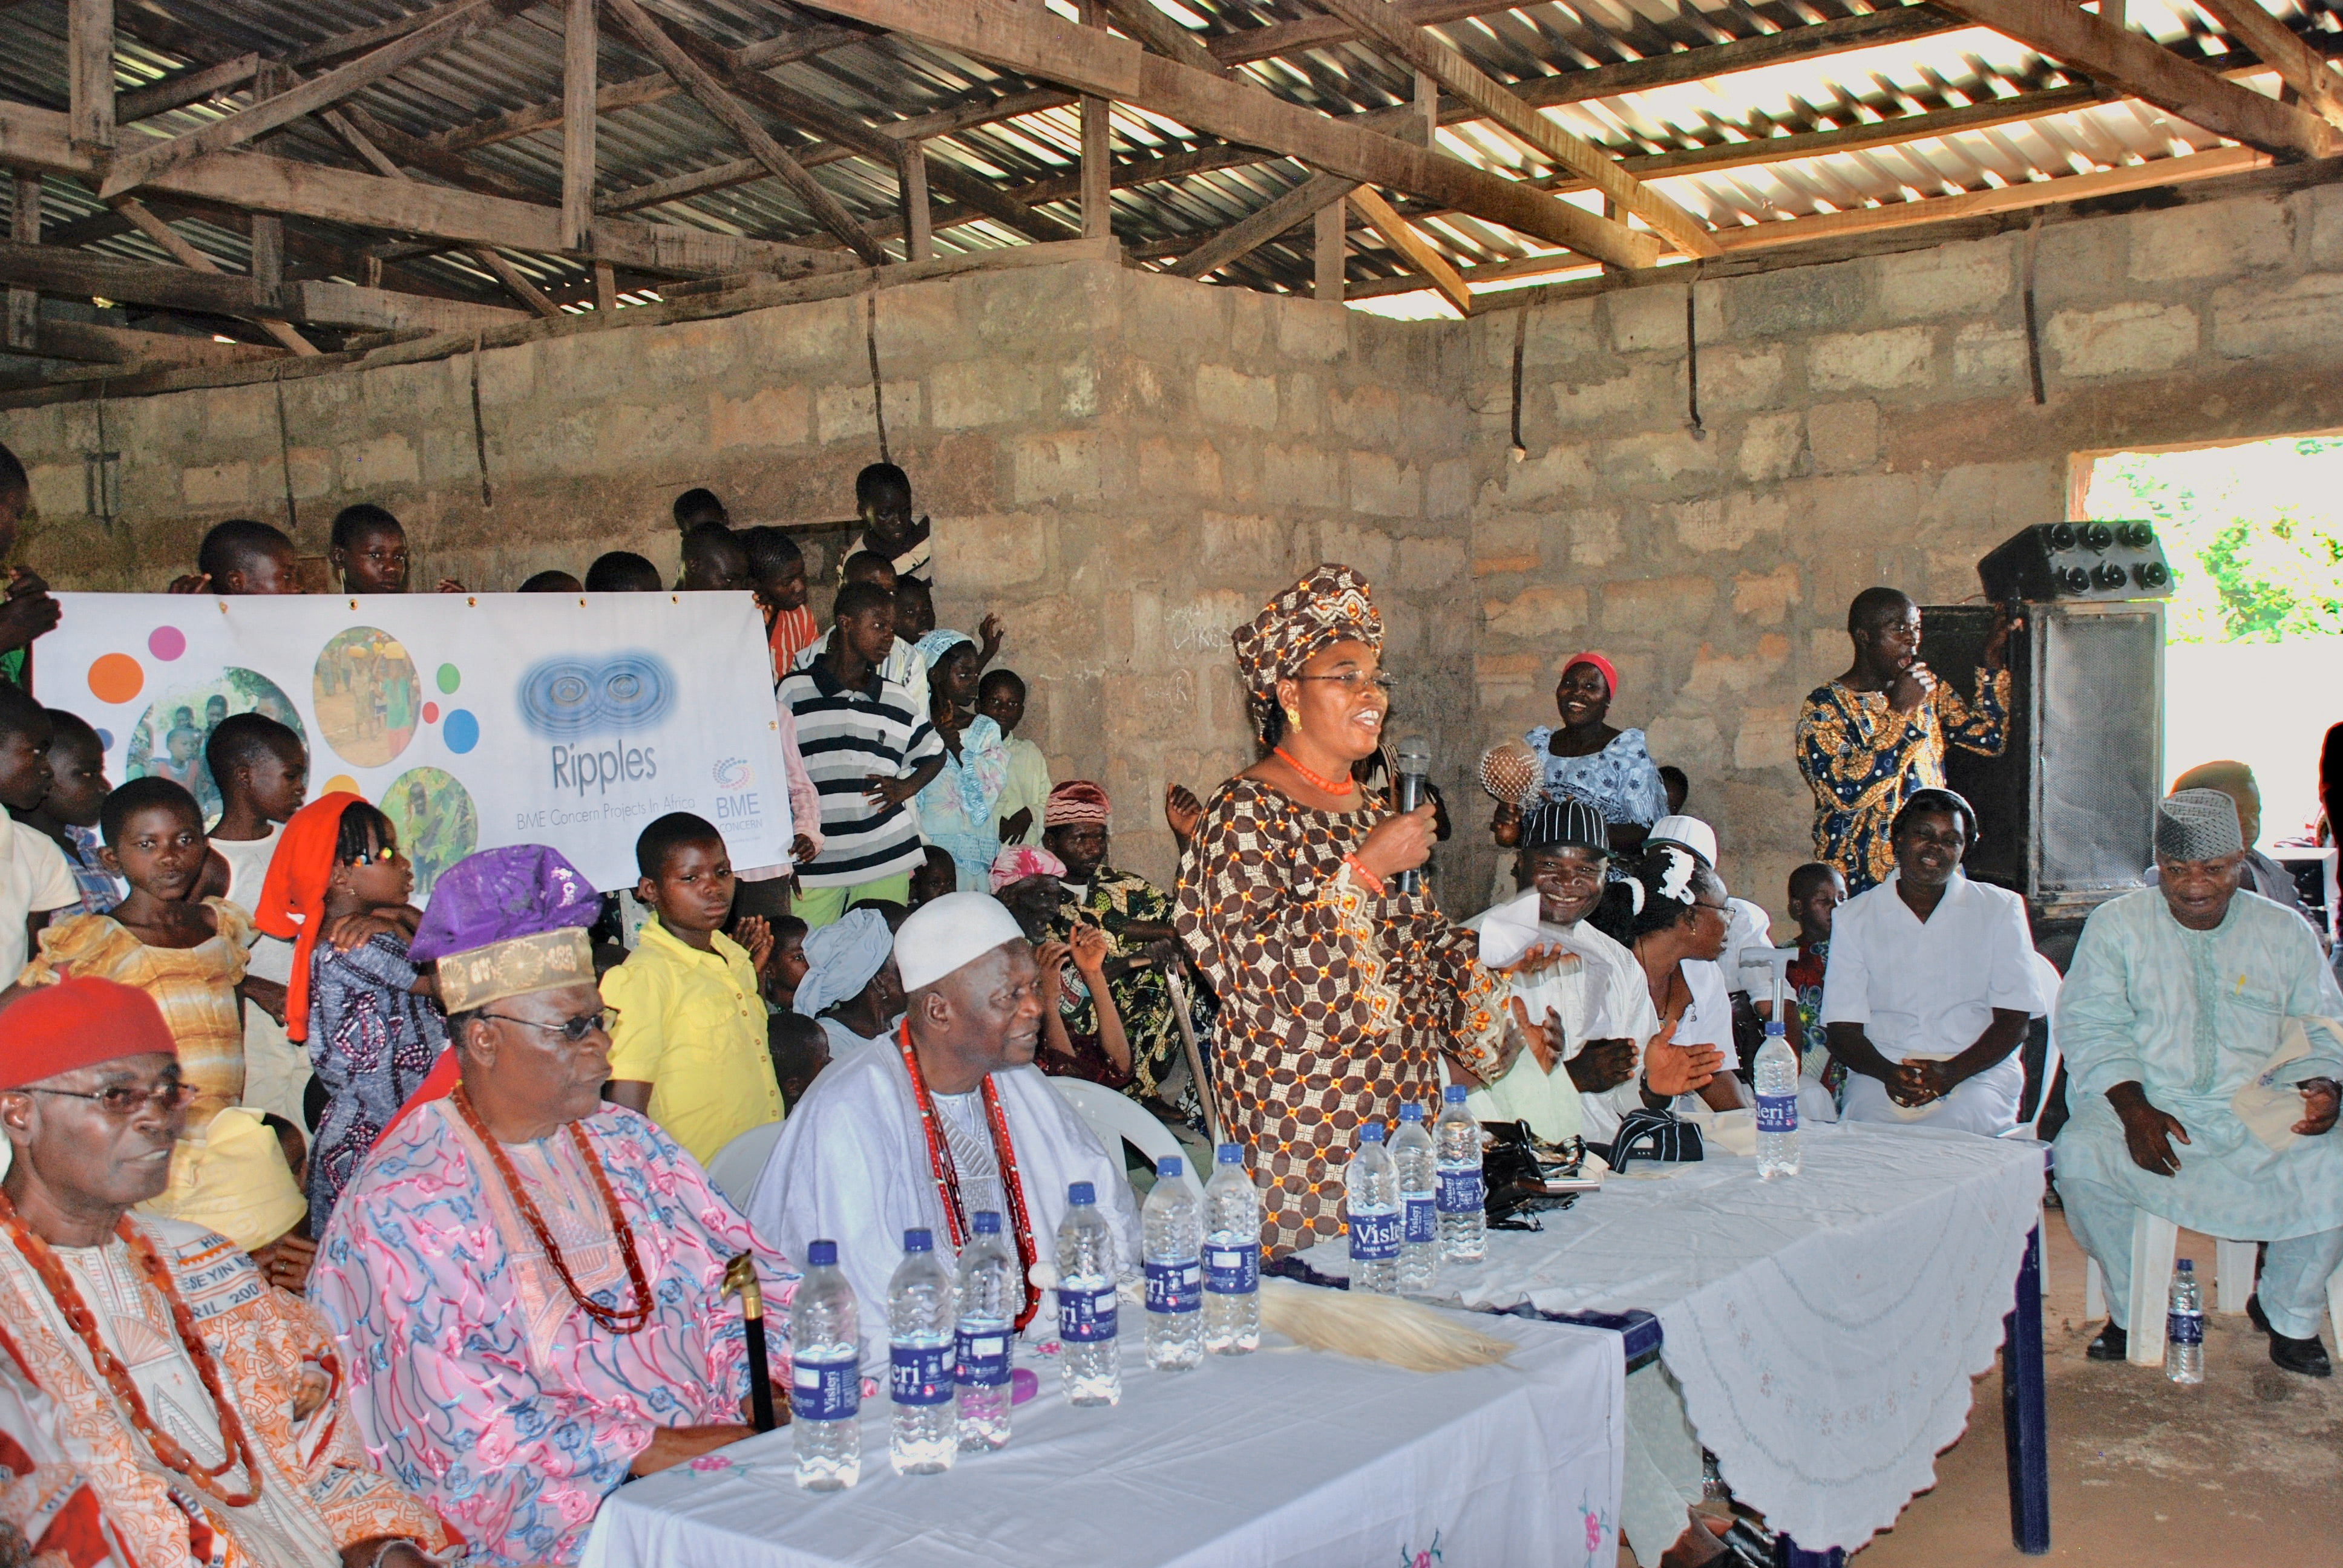 We find causes to support through direct community input. Depicted is a town hall held in Ogidi, Nigeria